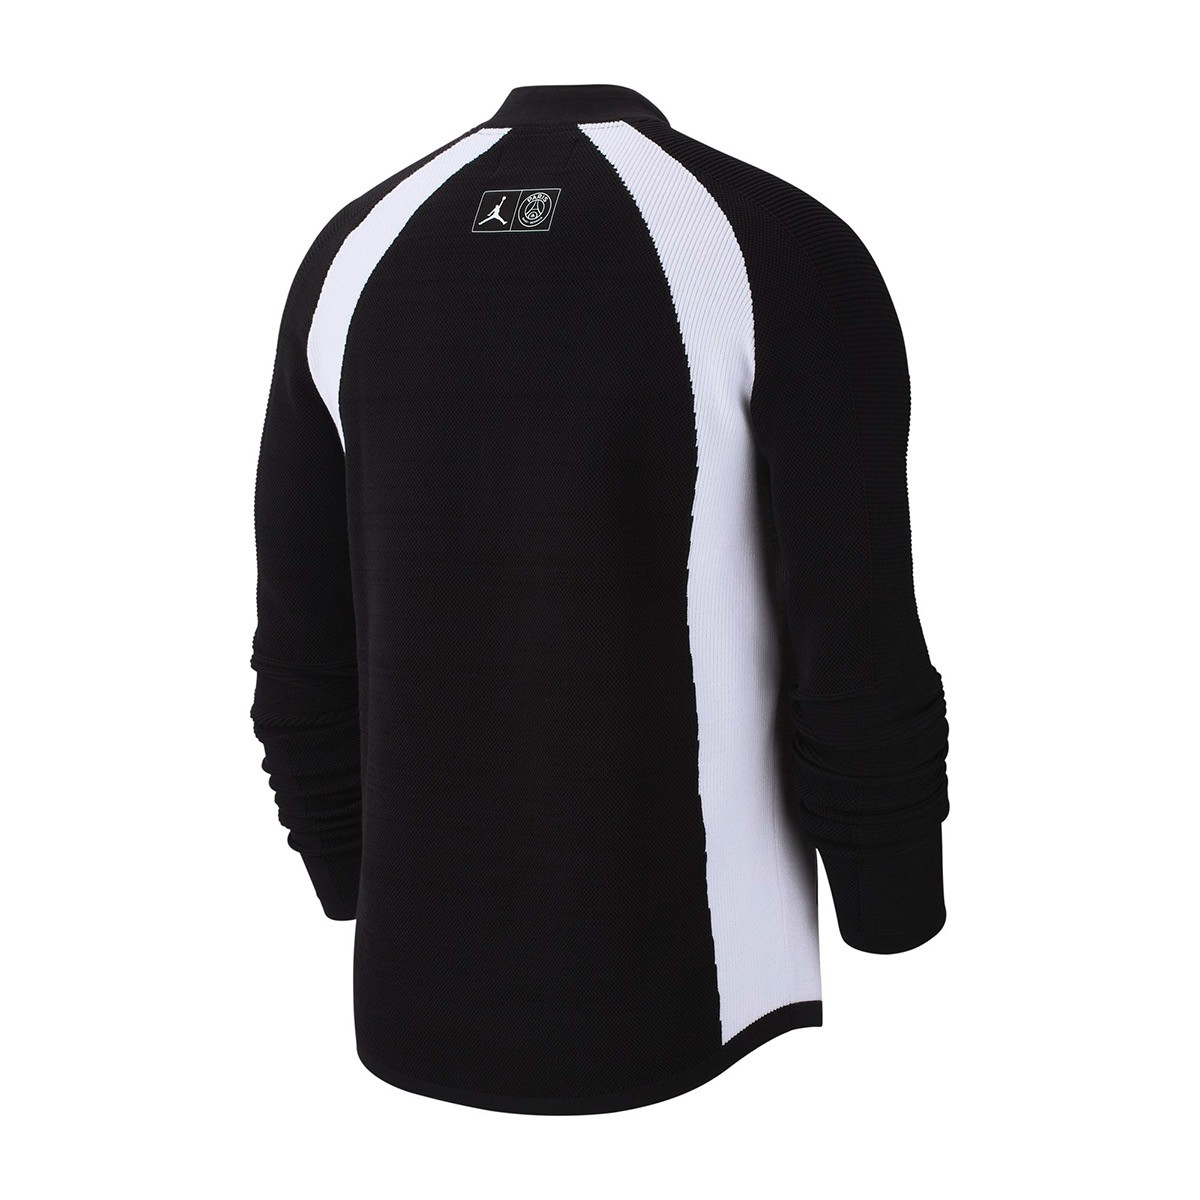 5fdec2b57e9c Jacket Nike Jordan x PSG Flight Knit Black-White - Football store Fútbol  Emotion